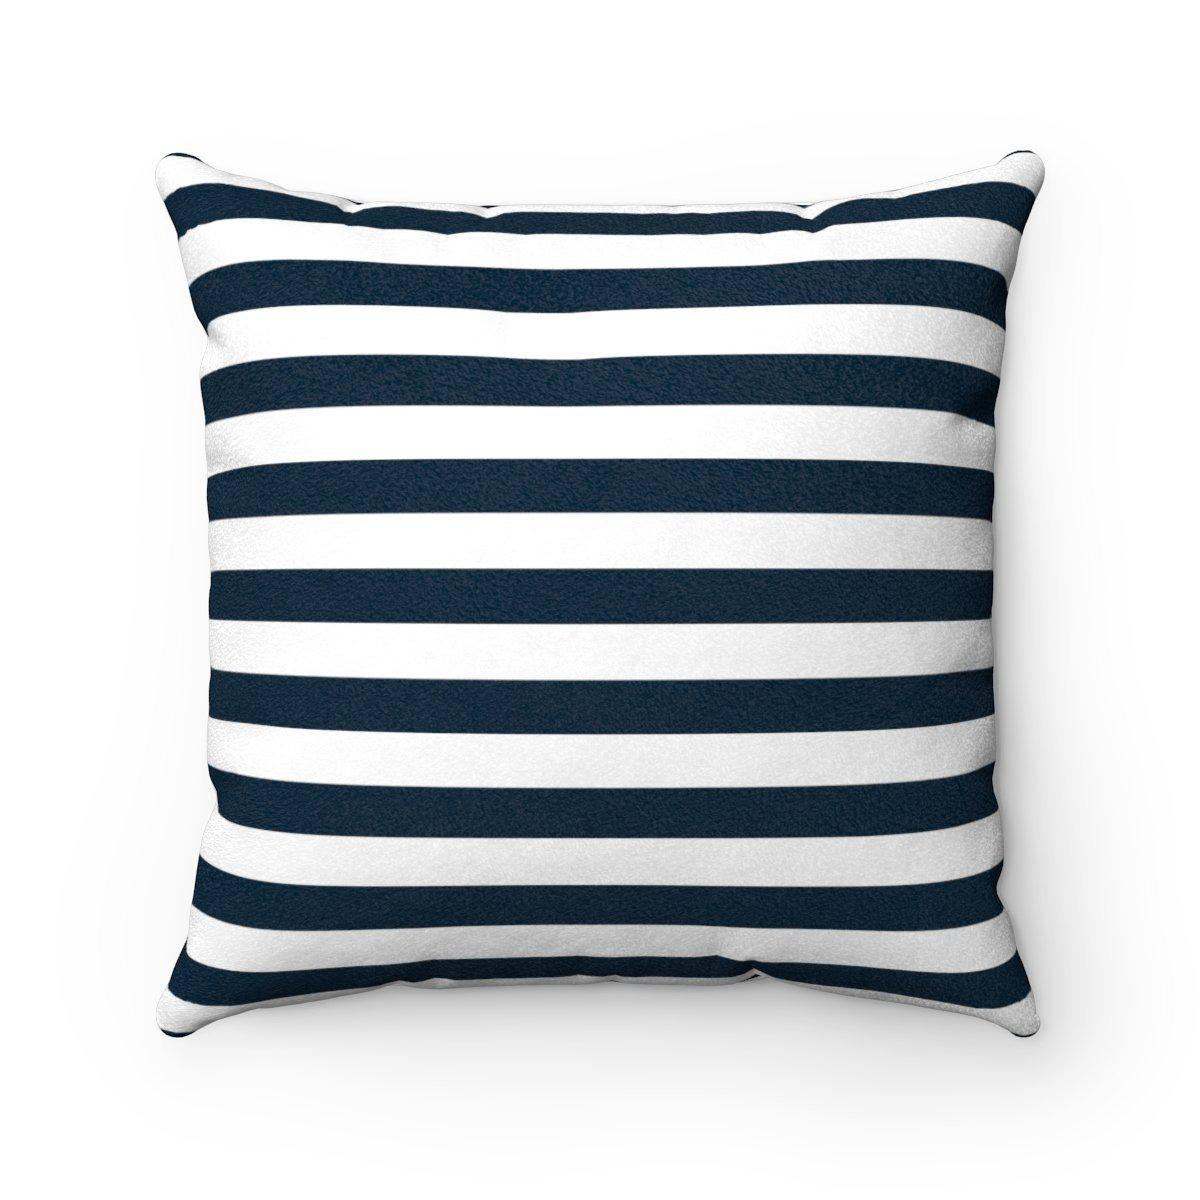 2 in 1 Double sided faux suede decorative striped pillow w/insert-Home Decor - Decorative Accents - Pillows & Throws - Decorative Pillows-Maison d'Elite-14x14-Très Elite